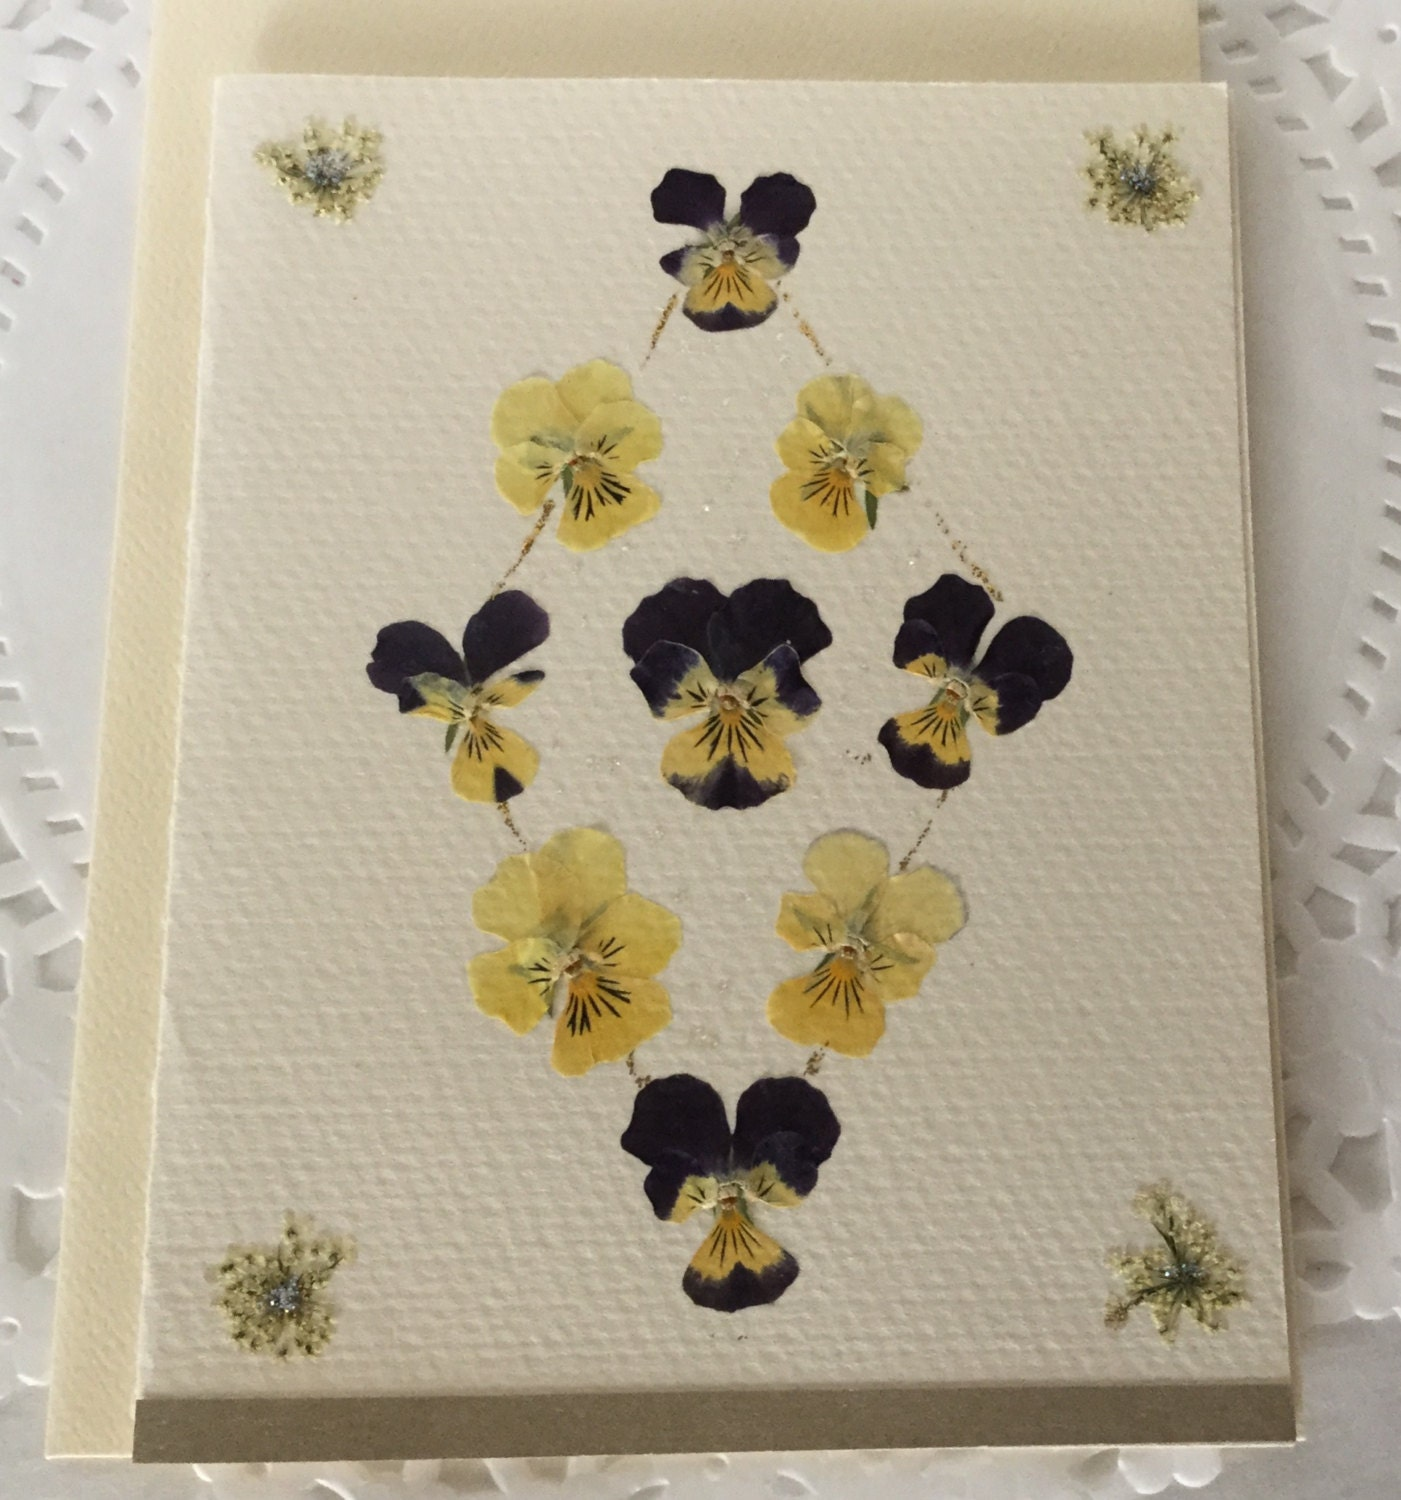 pansy diamond note card pressed flowers outside and inside